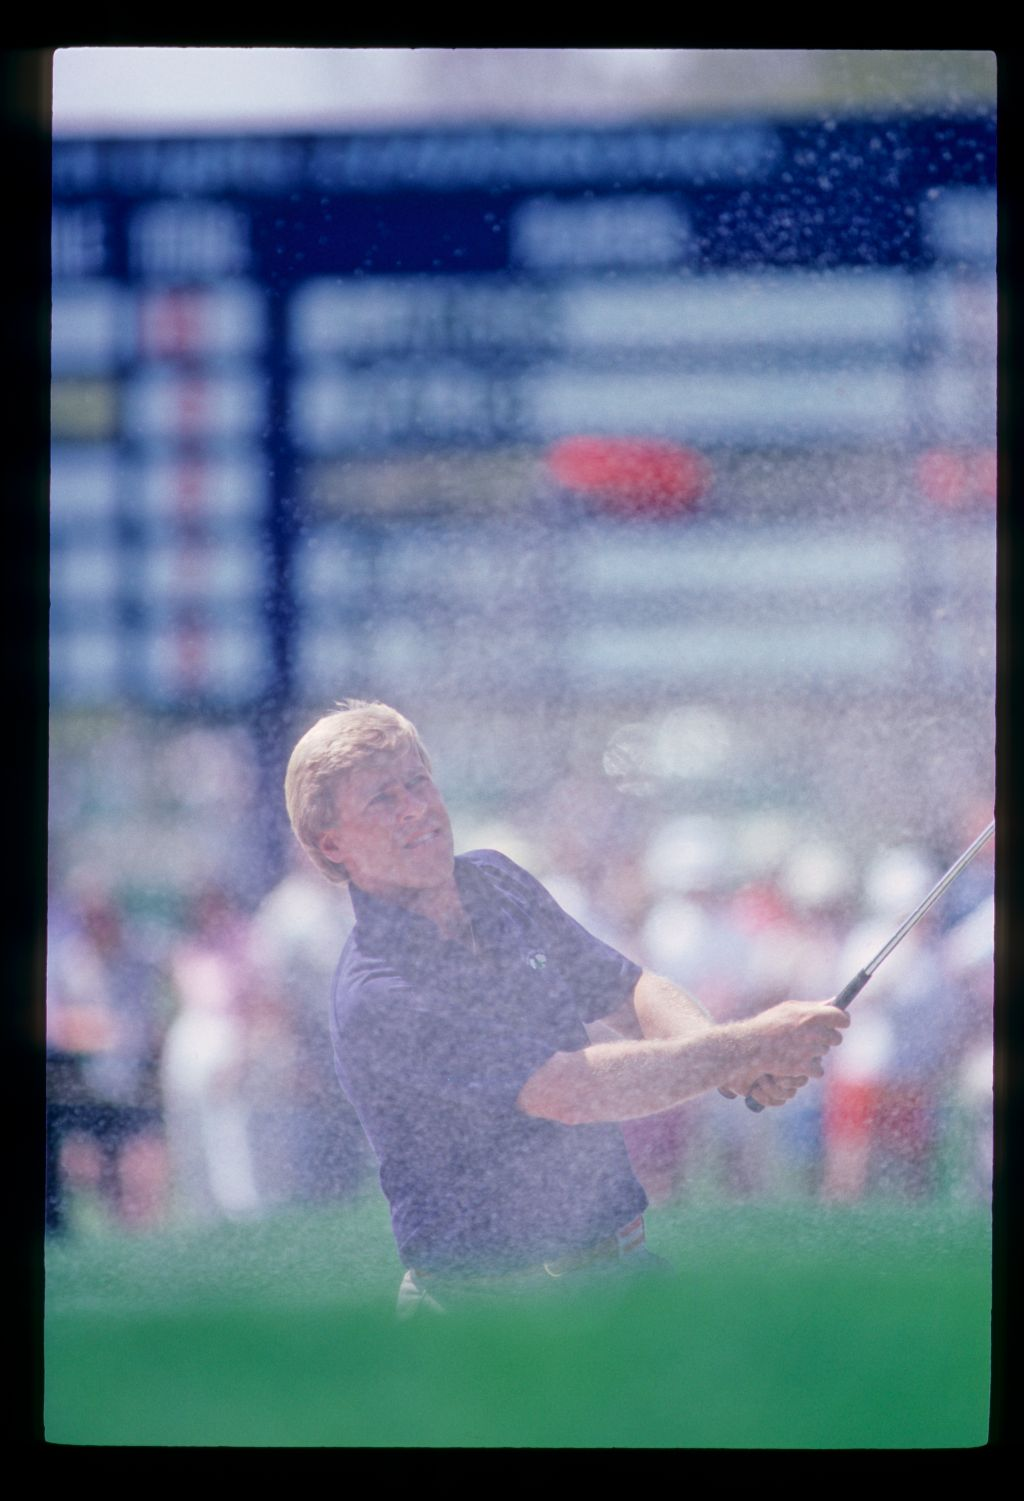 Hal Sutton splashing from a bunker during the 1984 TPC